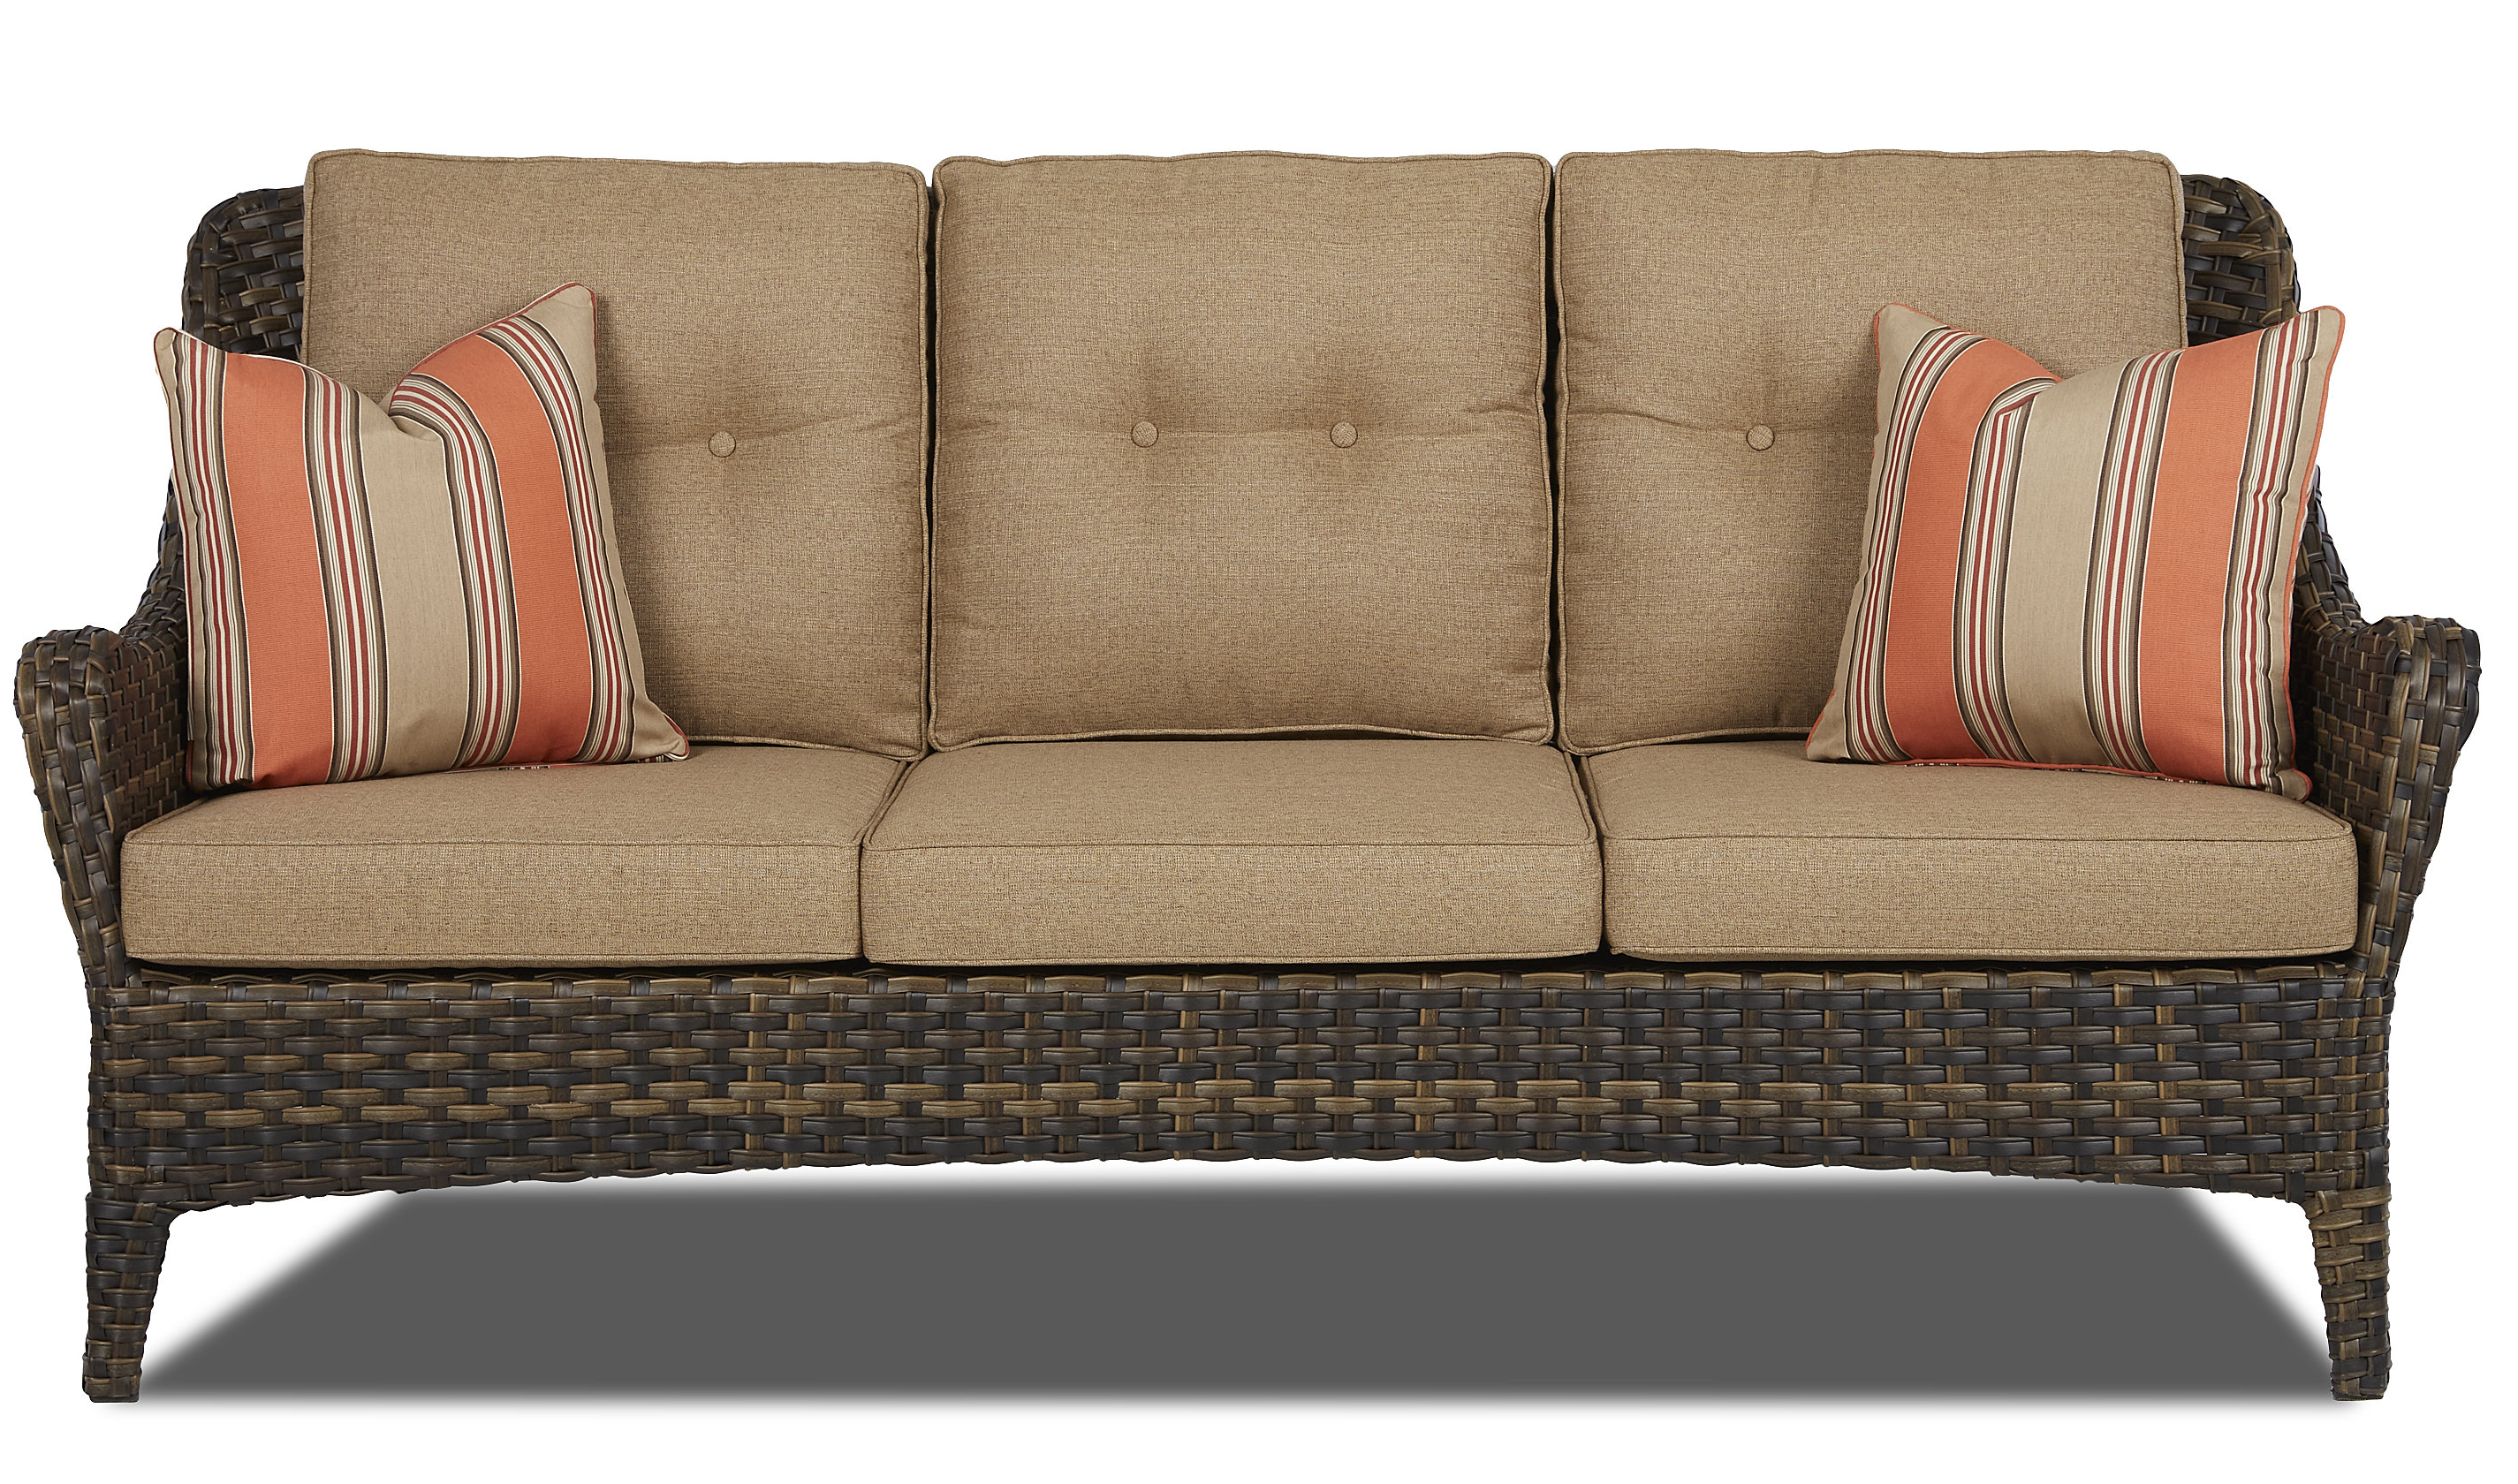 Avadi Outdoor Sofas & Ottomans 3 Piece Set For Current Ranstead Patio Sofa With Cushion (View 3 of 25)